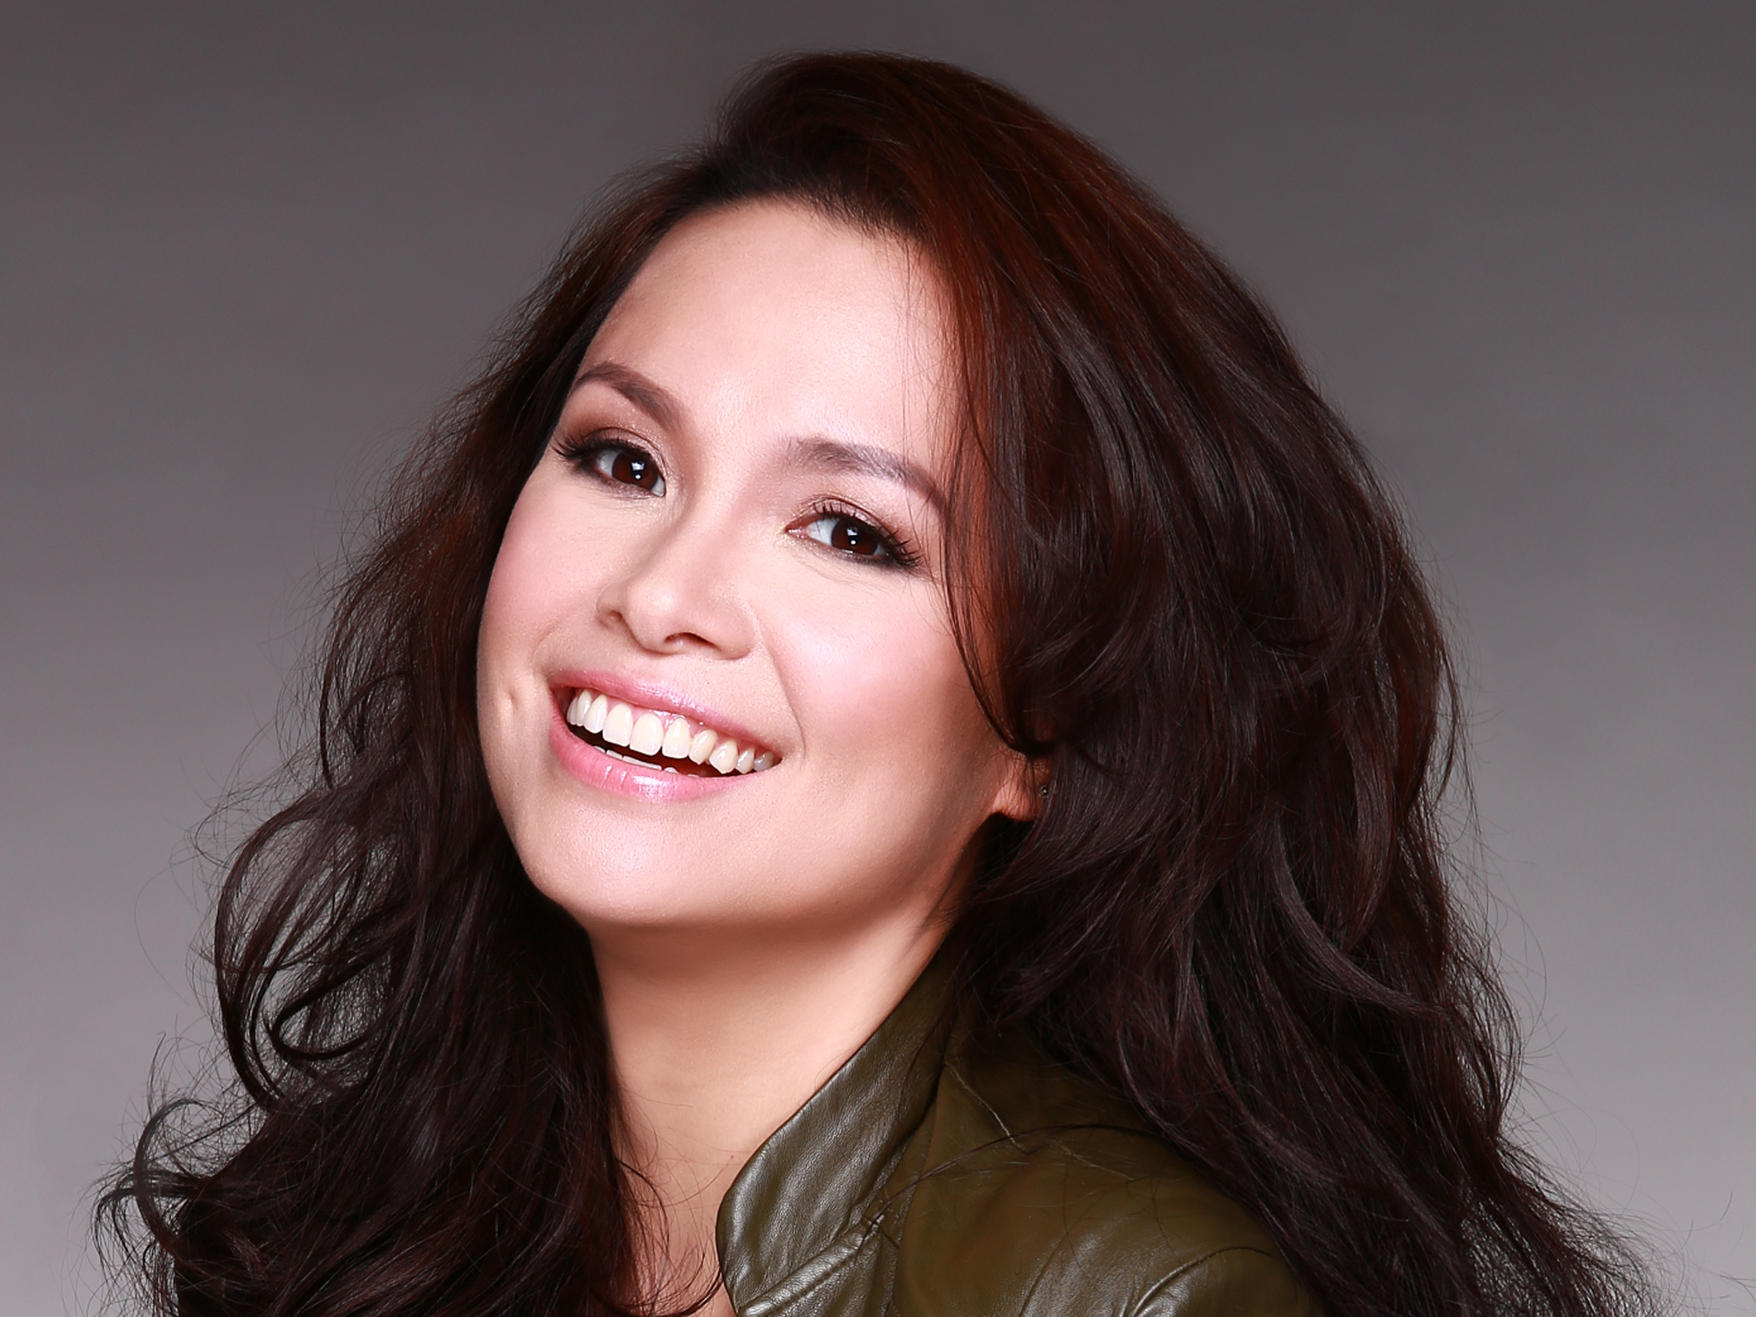 Big News Day >> Lea Salonga's Big Break(out): An Allergy Attack At The Audition | WPSU